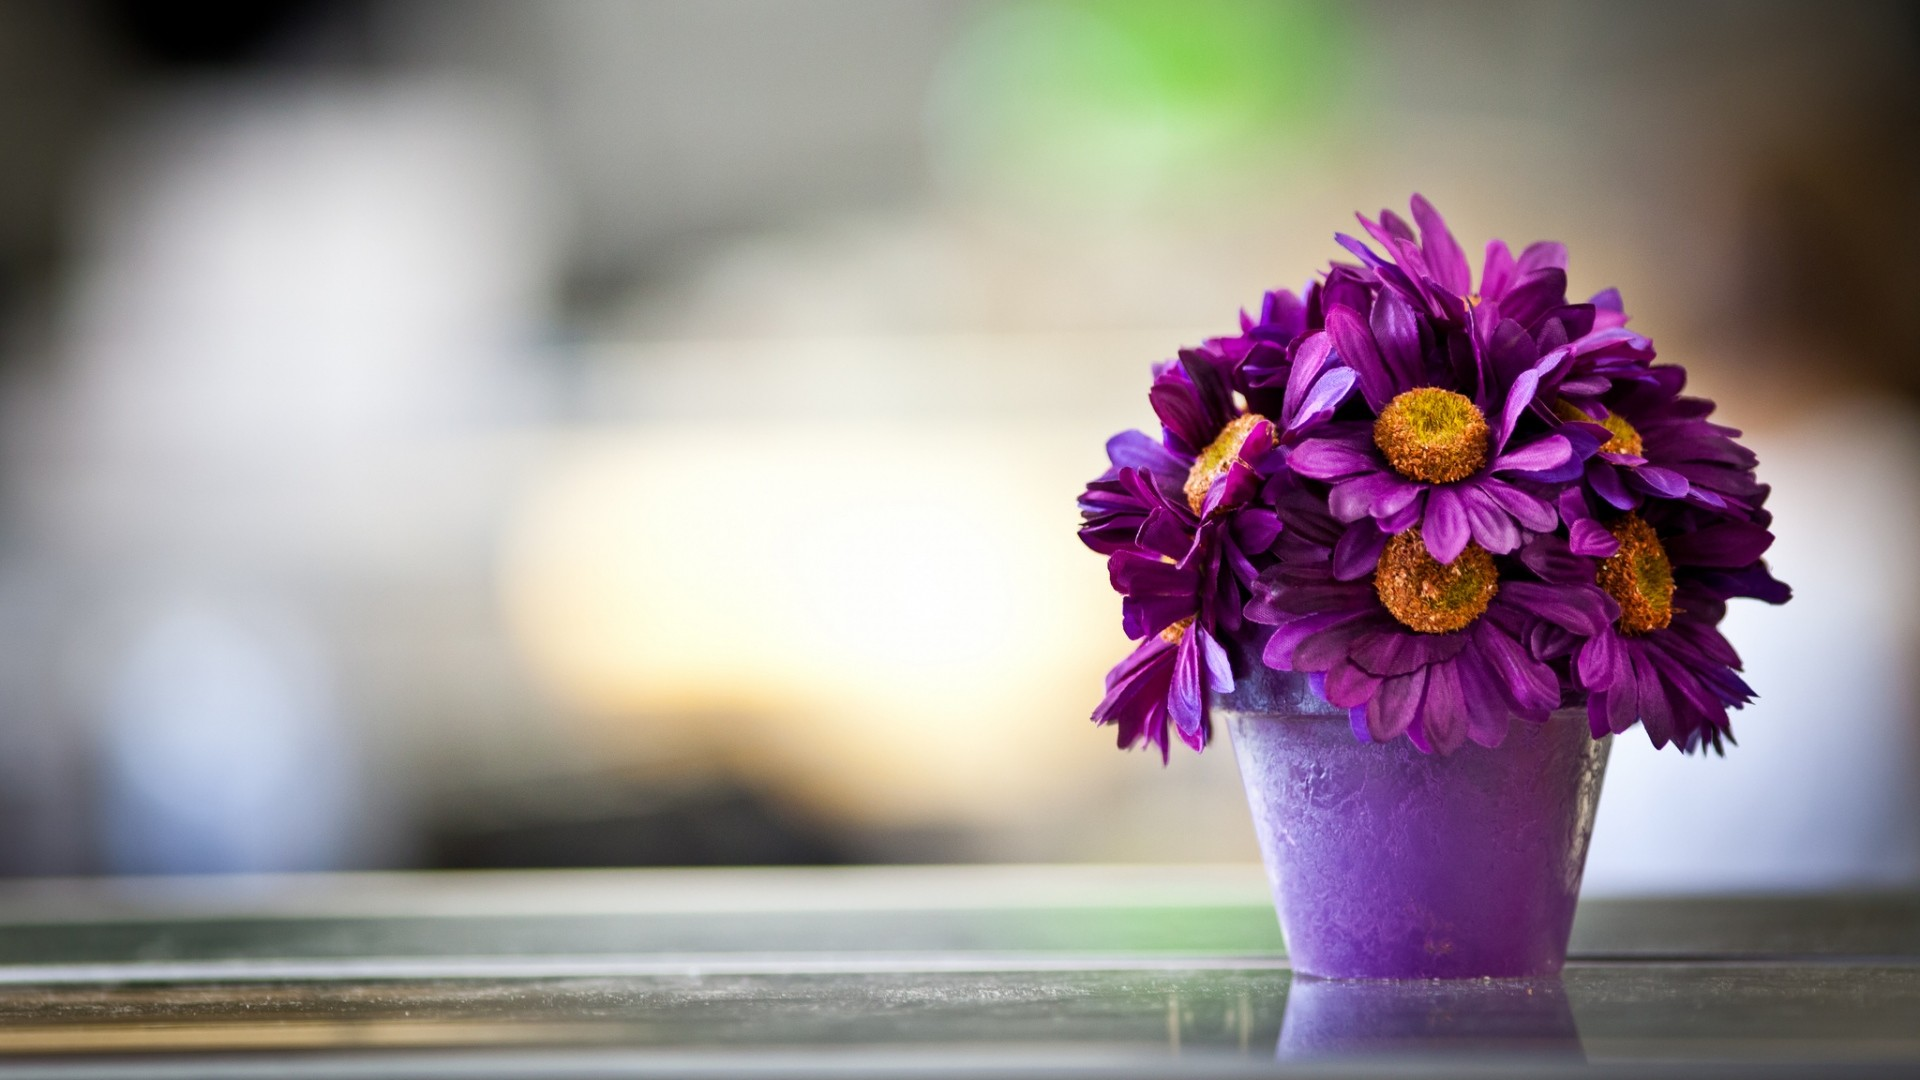 Hd flower wallpaper 1920x1080 preview wallpaper flower pot purple petals 1920x1080 mightylinksfo